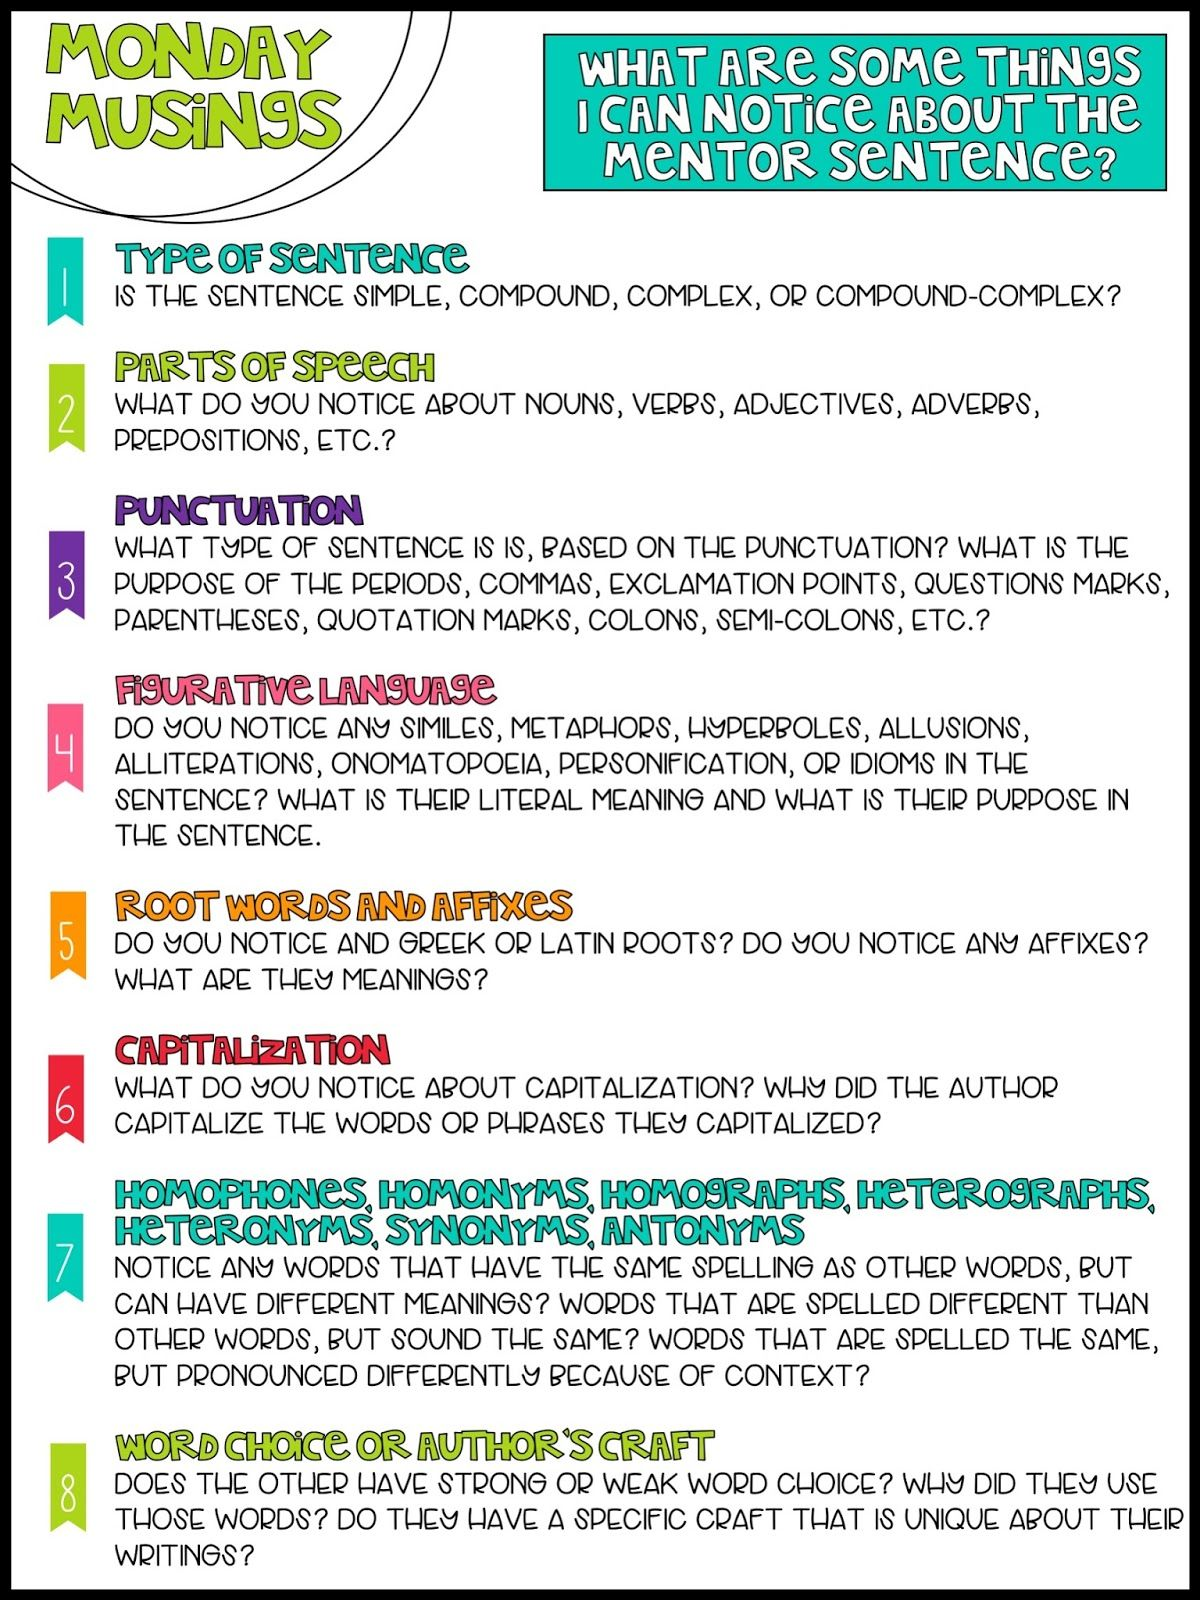 Plant Cell Worksheet Excel Best  Mentor Sentences Ideas On Pinterest  Mentoring  Free Esol Worksheets with Nothing But The Truth Worksheets Word Best  Mentor Sentences Ideas On Pinterest  Mentoring Definition  Modles Gratuits Dinvitation And Text Structure Definition 3rd Grade Free Math Worksheets Word